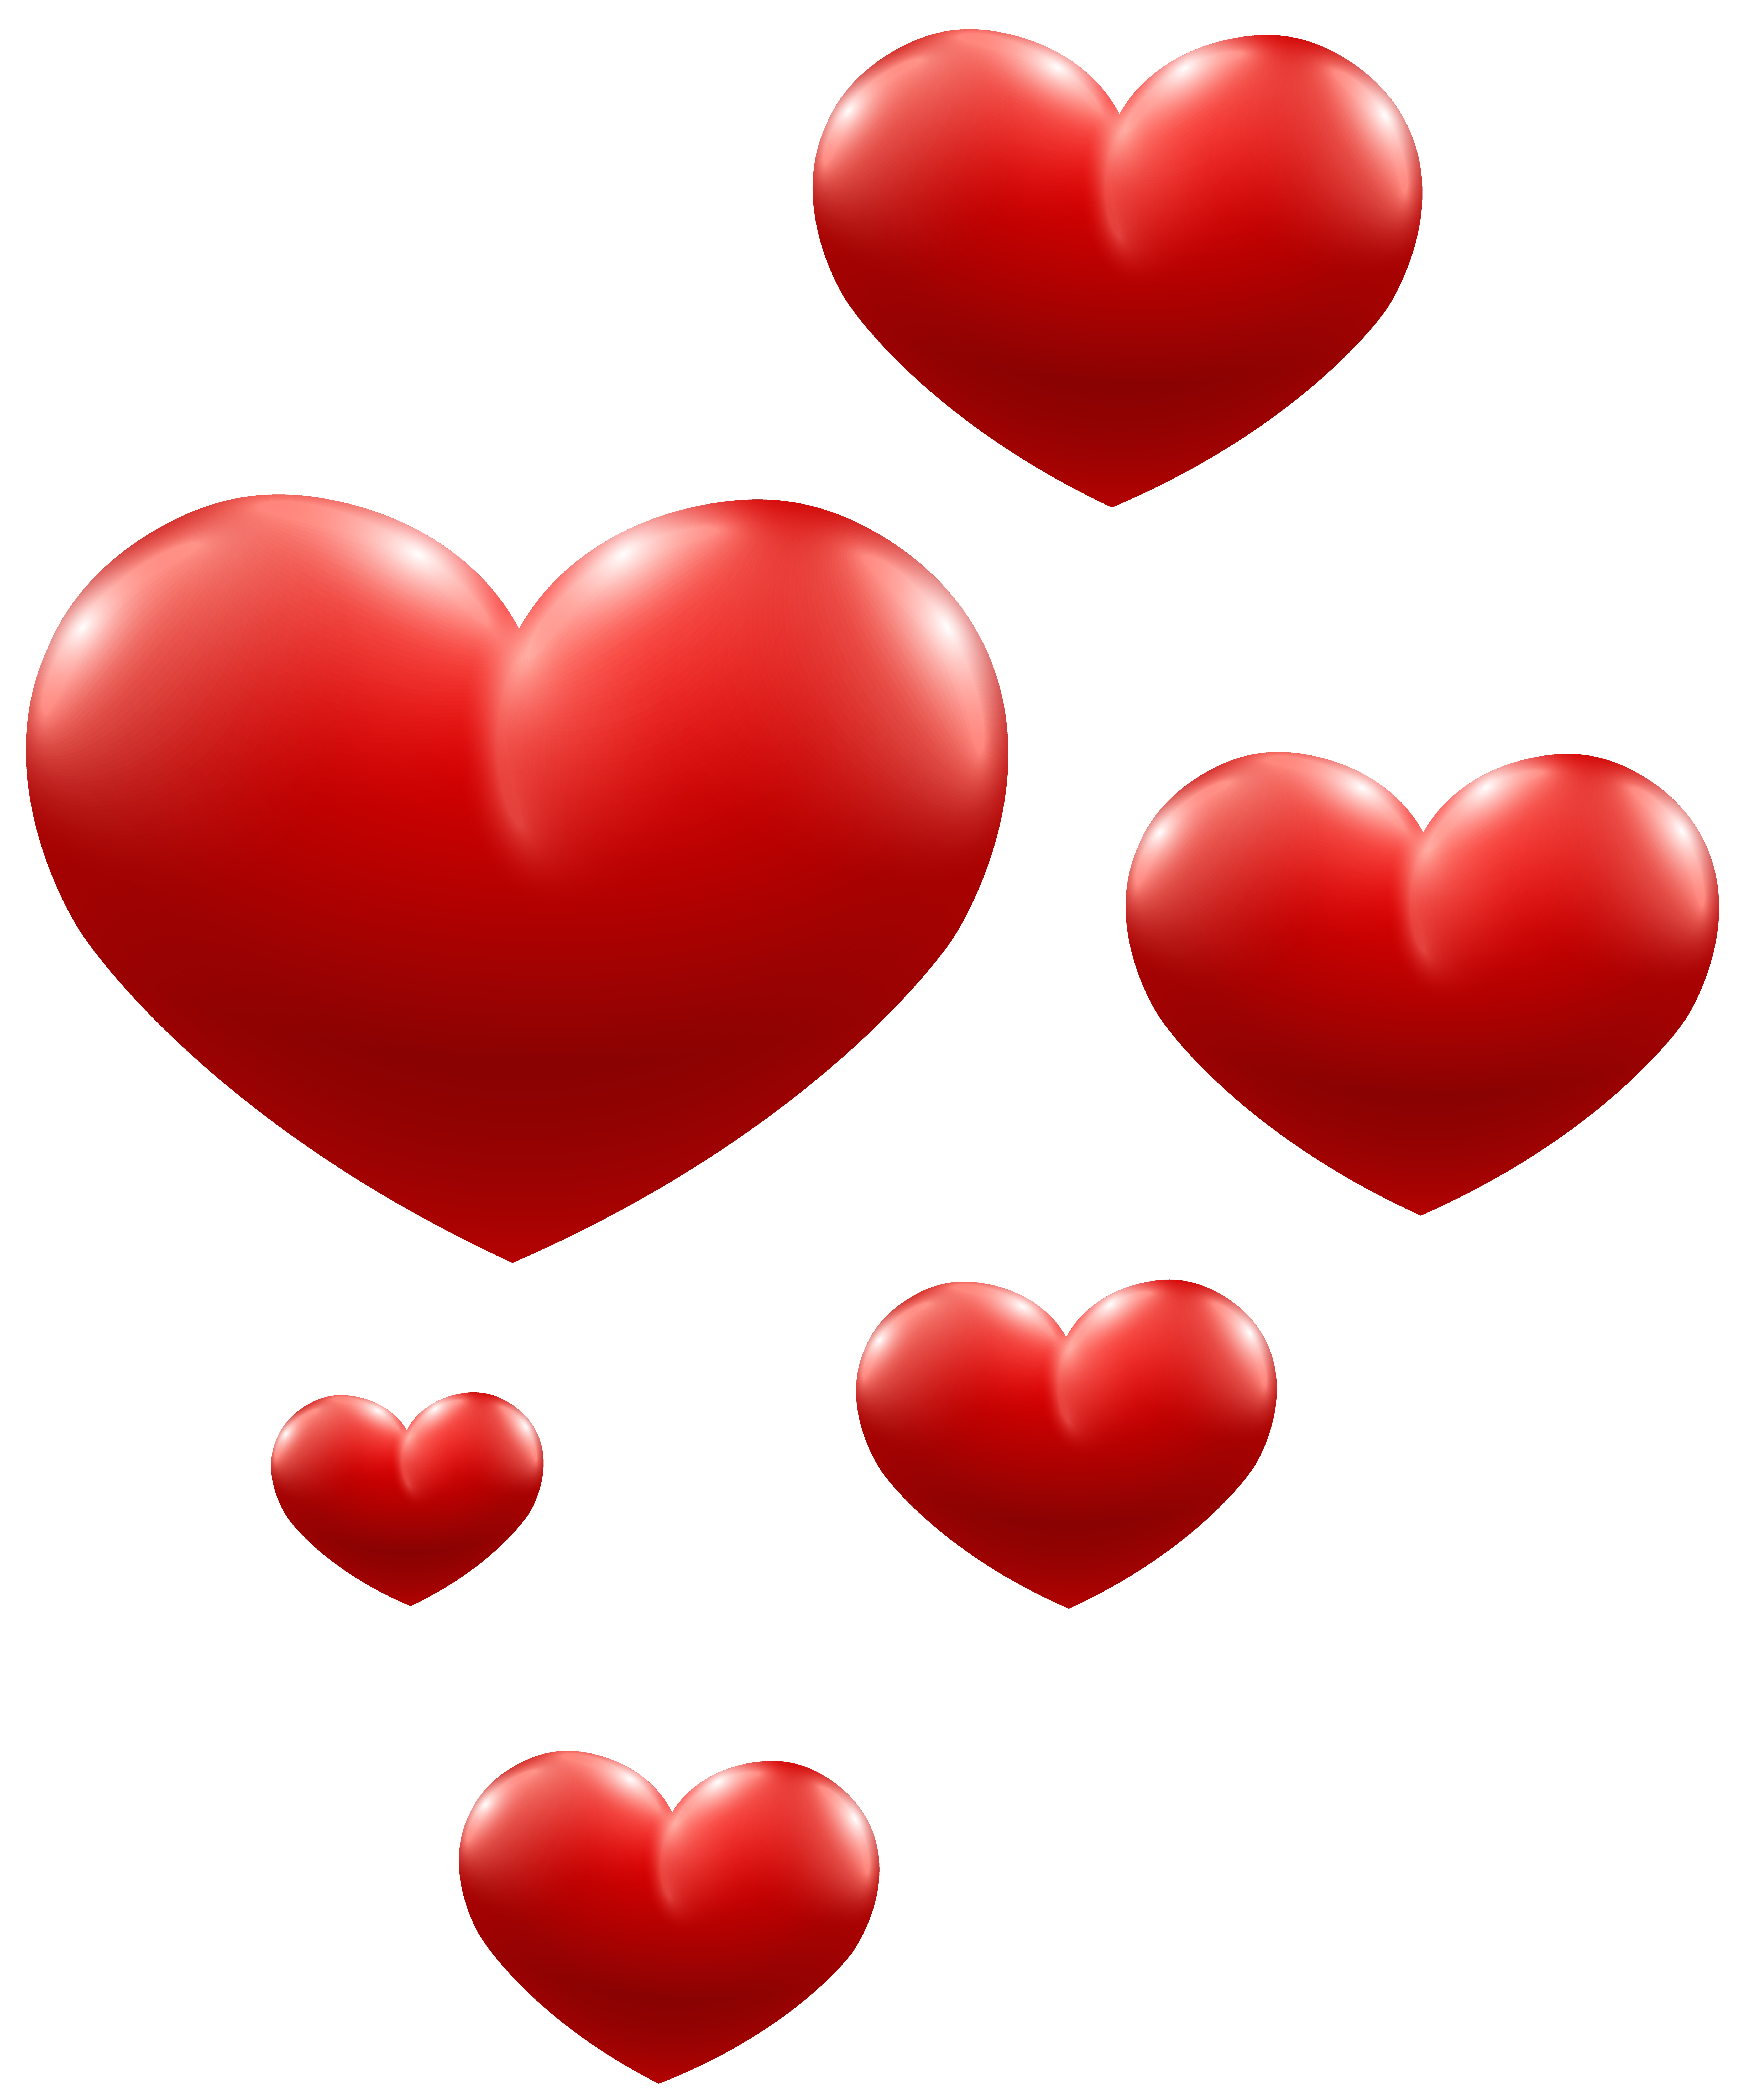 Red transparent png image. Hearts clipart bubble